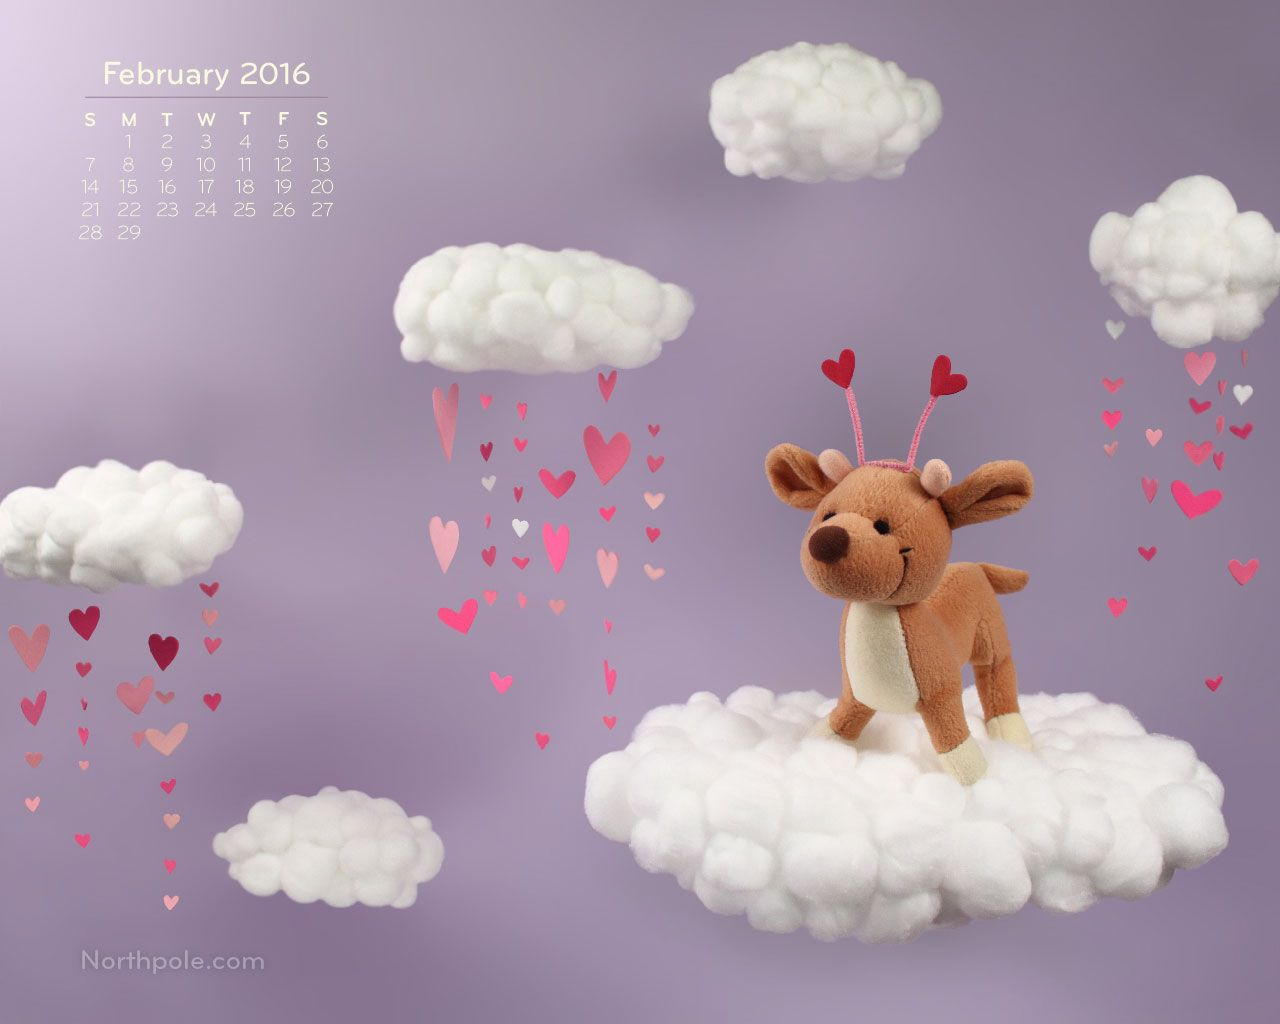 This Valentine's Day Raymond the reindeer is showering everyone with love and cheer! Brighten up your workspace with this cute wallpaper all month long. Download it for free at the Elf Blog.